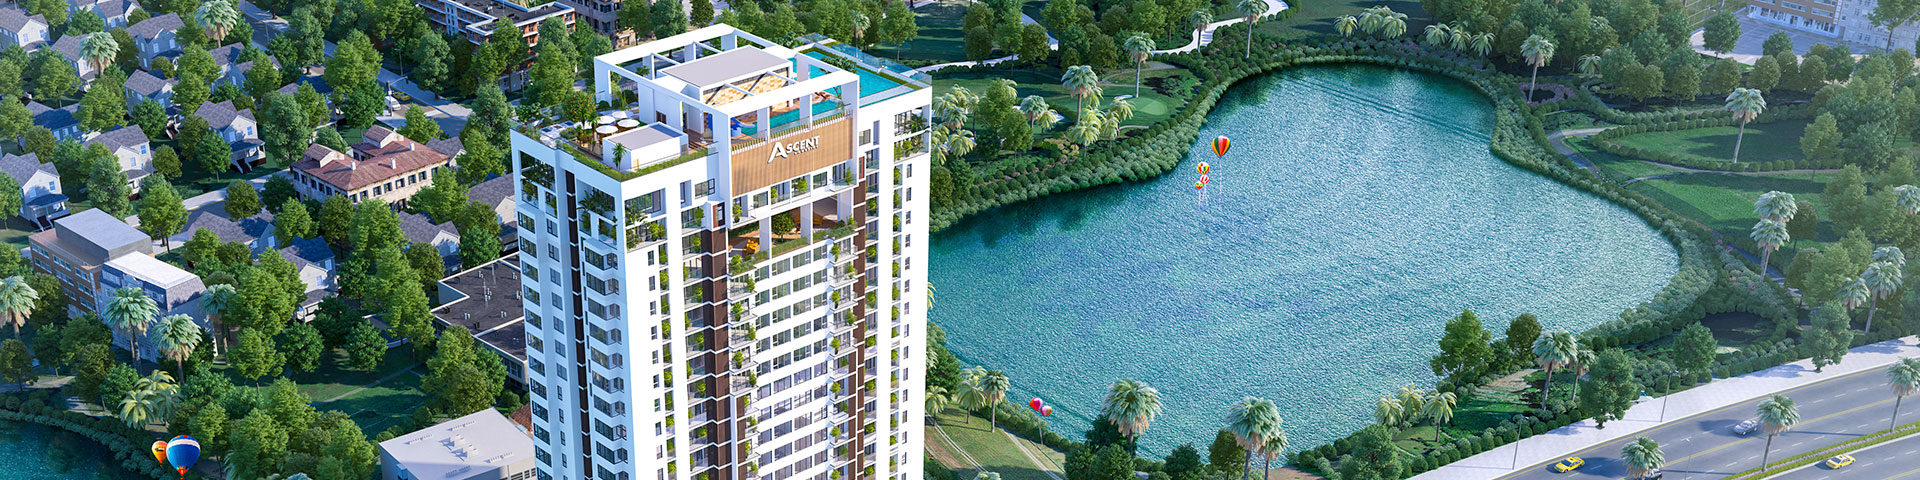 Ascent-Lakeside-phoi-canh-new-5